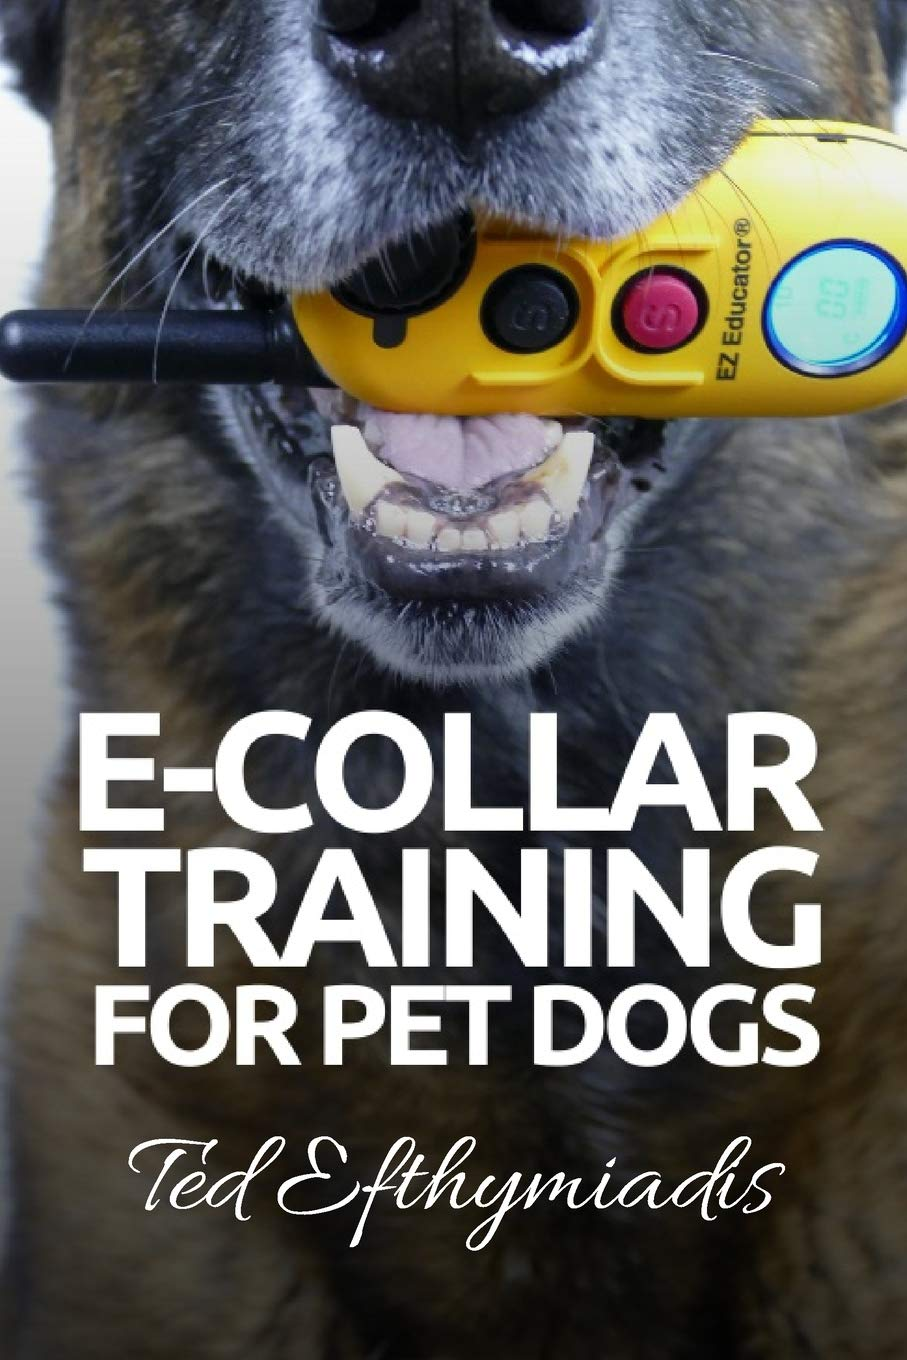 E-COLLAR TRAINING for Pet Dogs The only resource you ll need to train your dog with the aid of an electric training collar Dog Training for Pet Dogs Paperback July 21, 2018